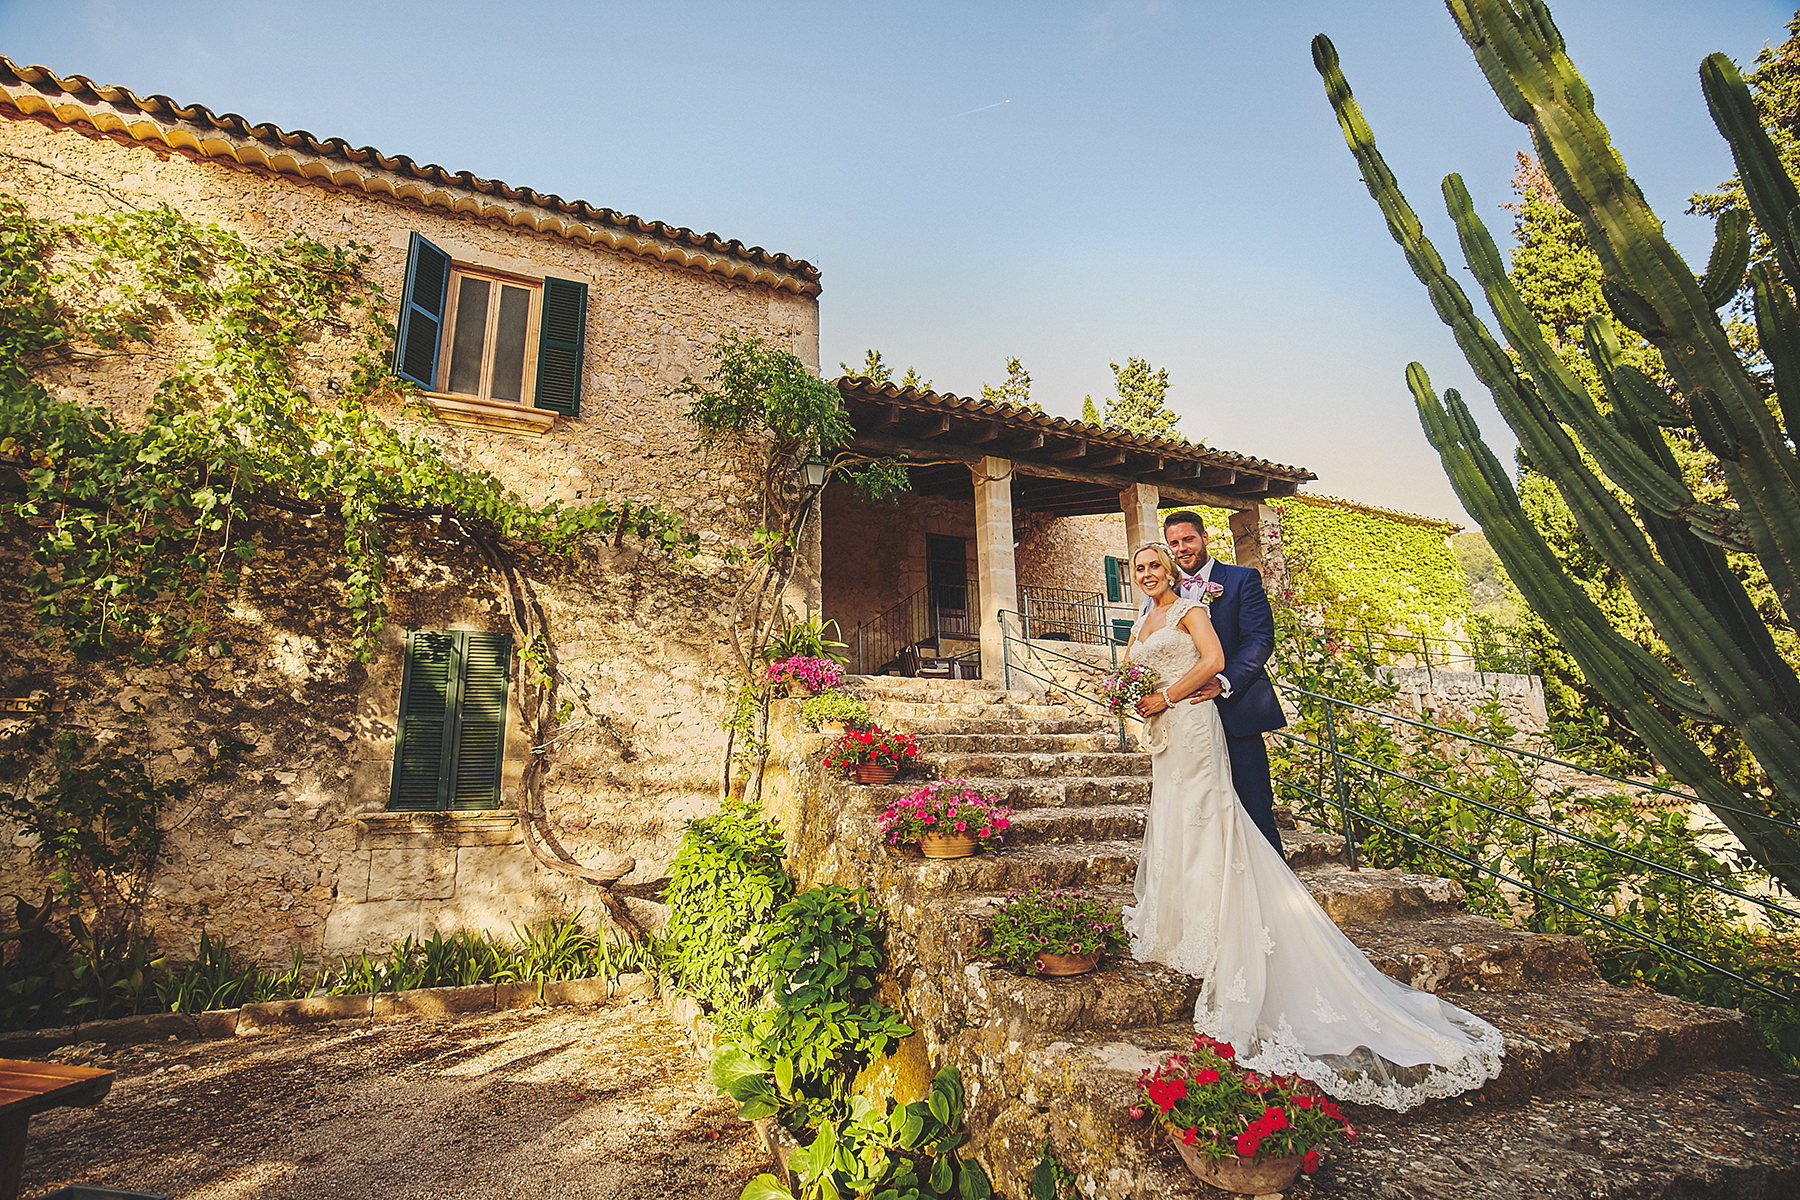 281 - Destination wedding in a magical Mallorca